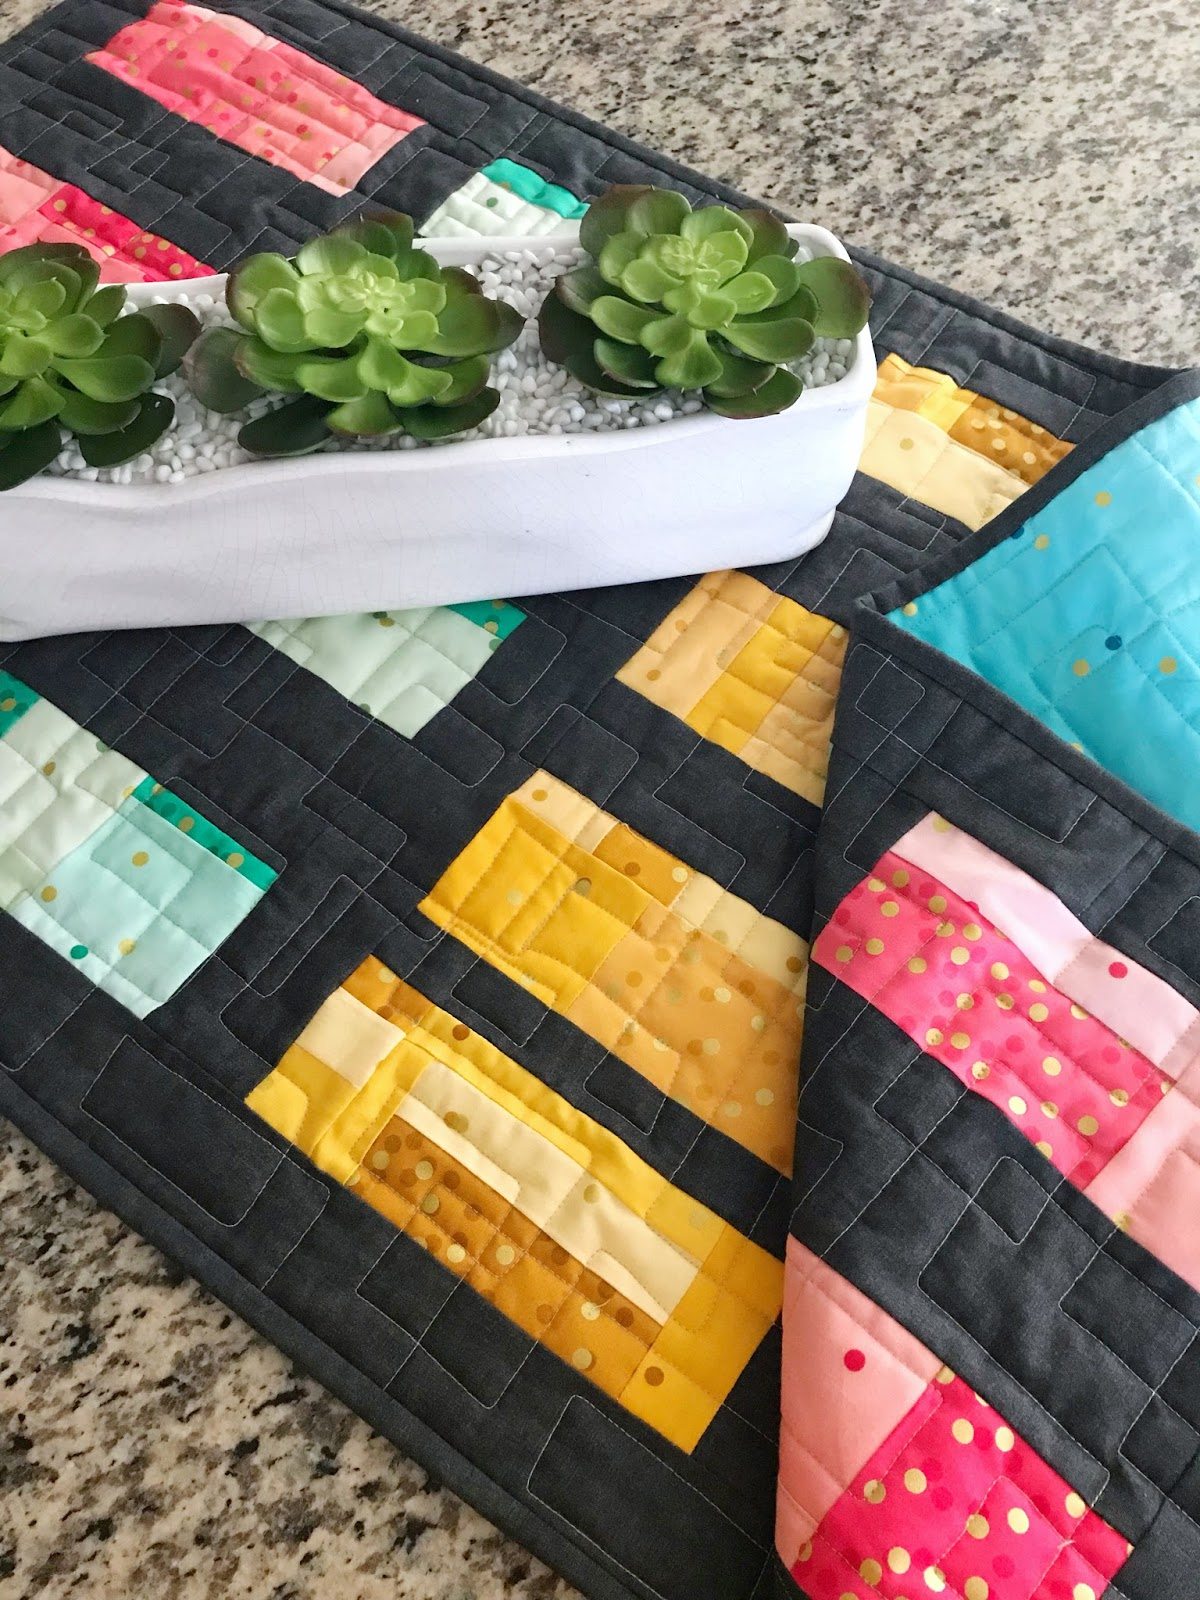 quilts text of the no facebook cottages available media ccquiltcottage quilt id automatic cottage sale alt home friends for